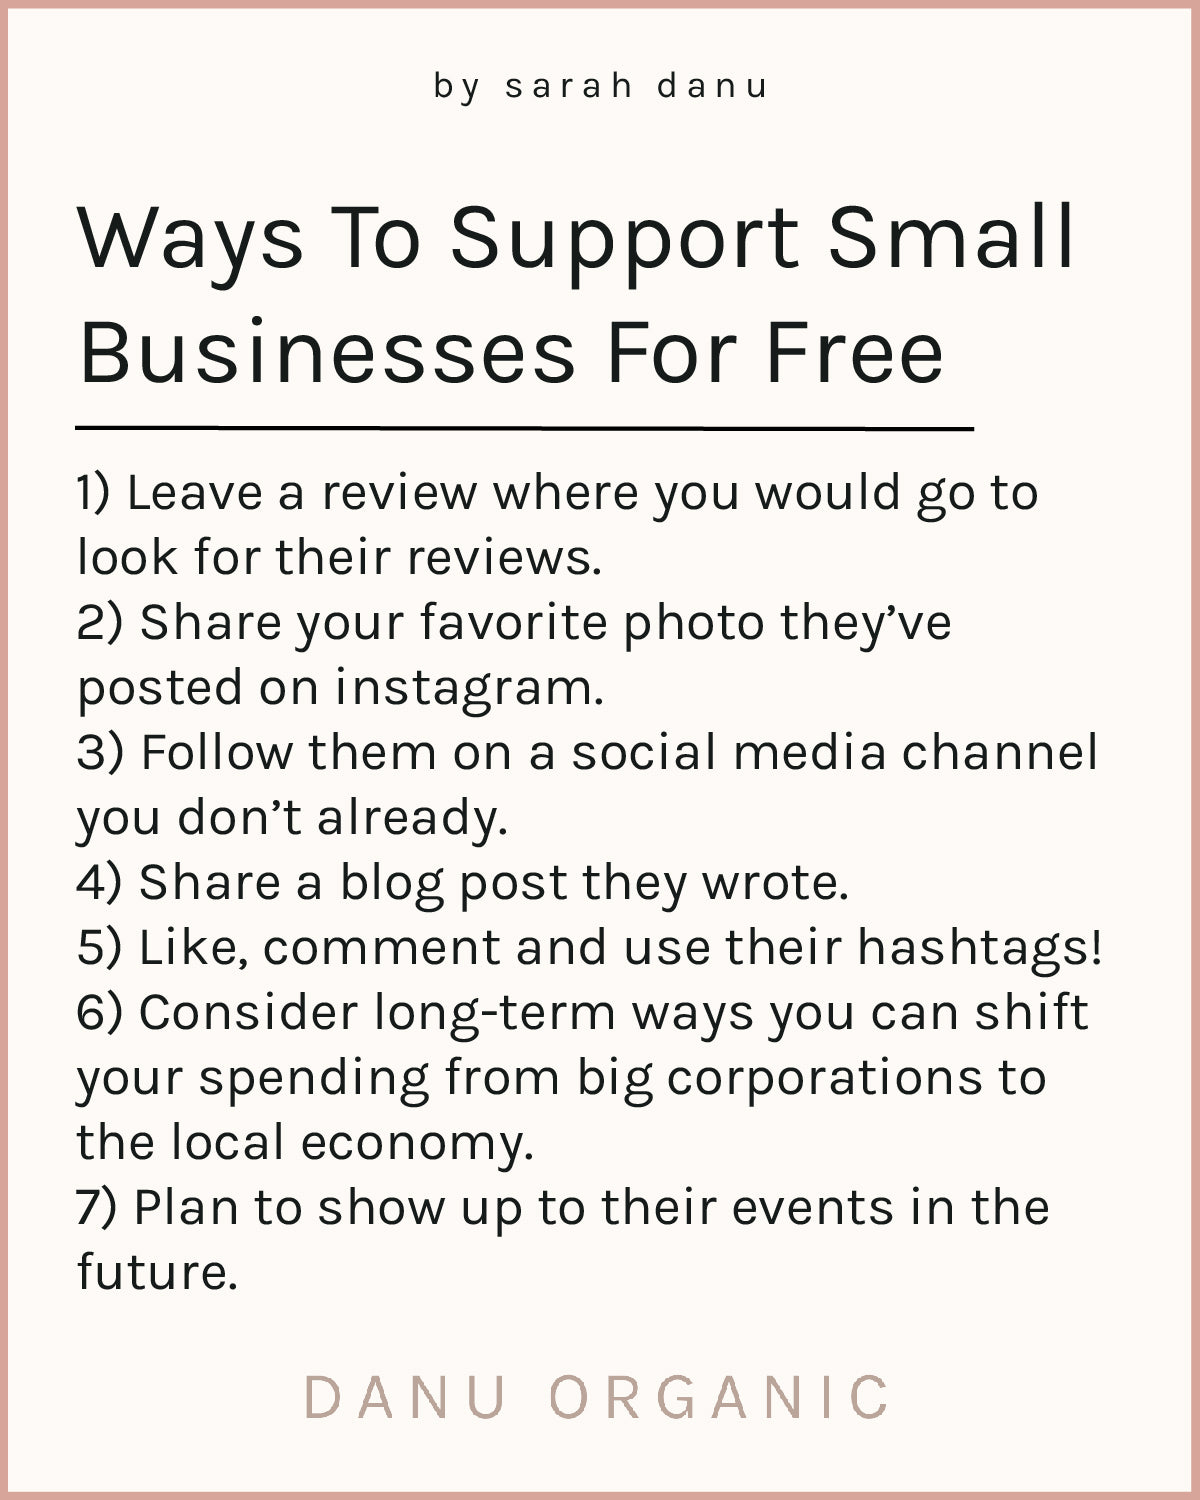 Ways To Support Small Businesses For Free